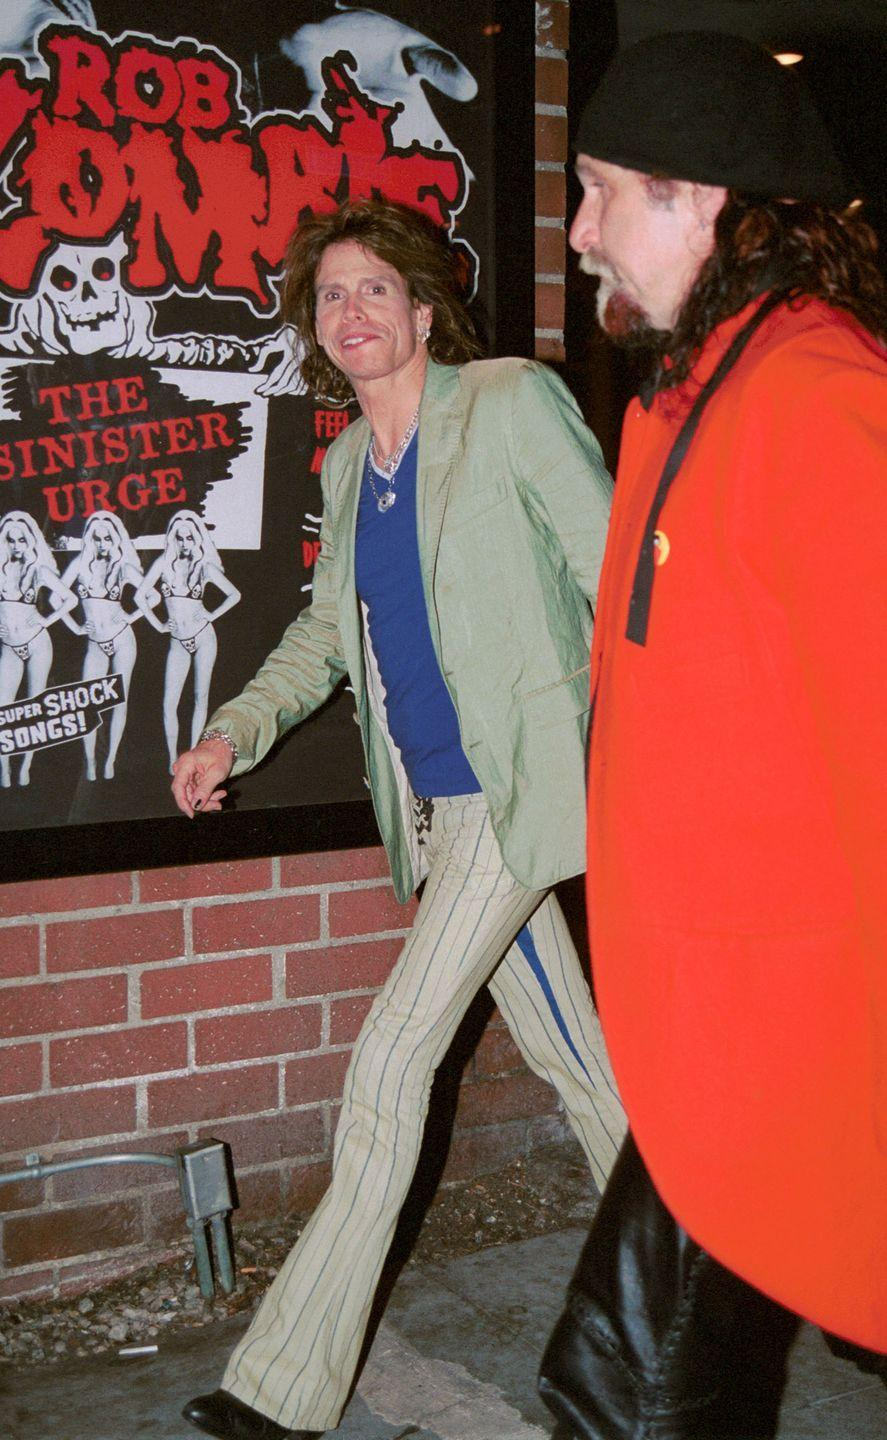 <p>Steven Tyler and Mark Hudson leave The Viper room April 30, 2002 in West Hollywood, CA.</p>